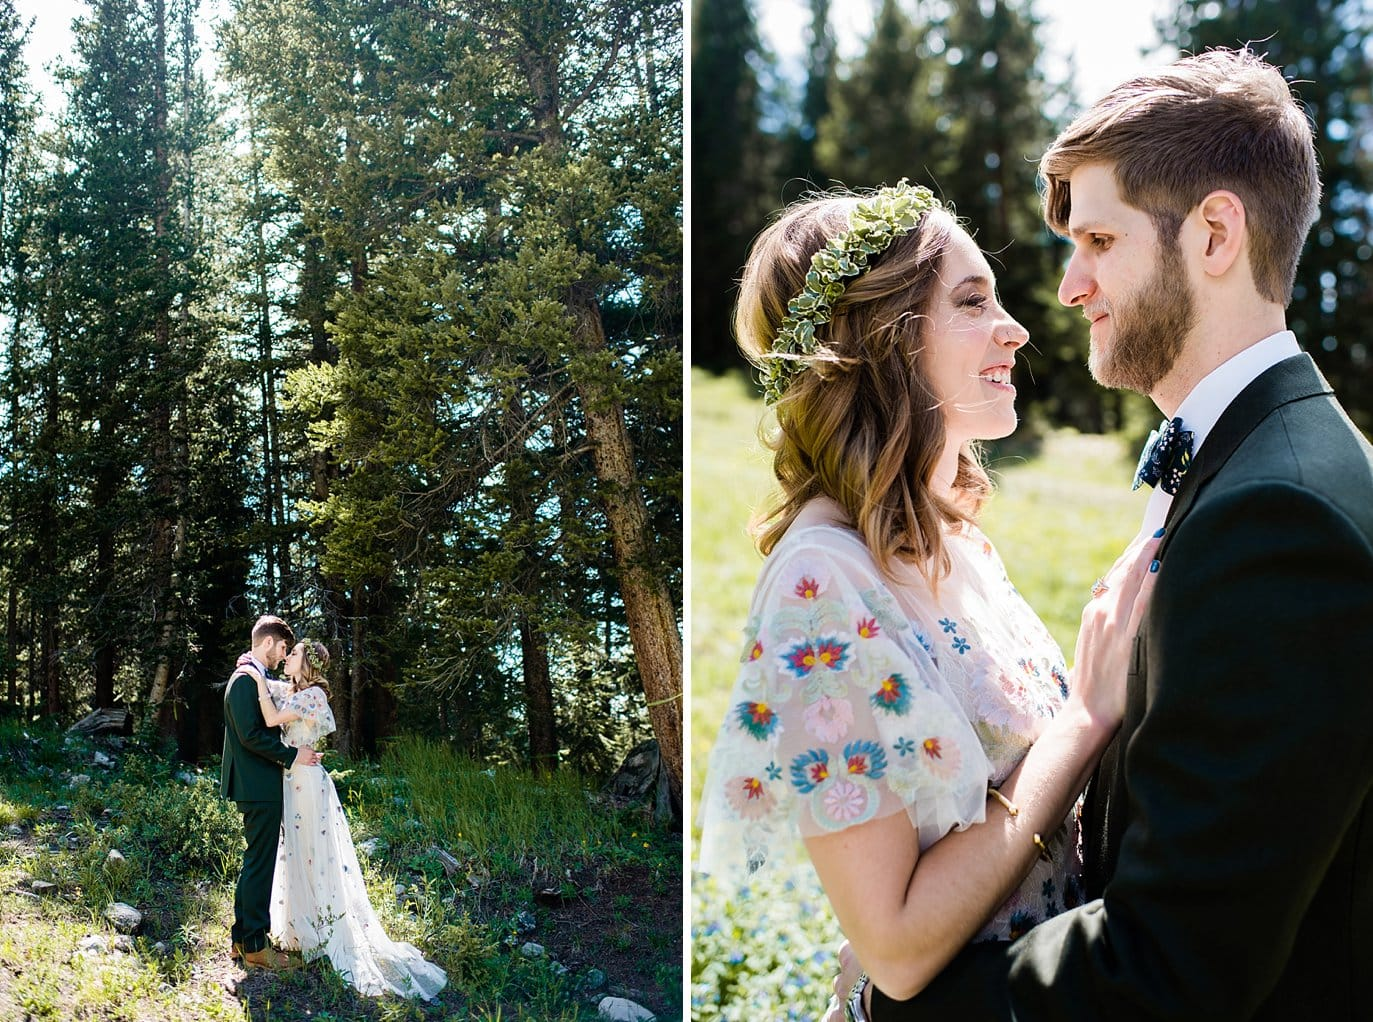 bride and groom in trees at base of mountain at Arapahoe Basin wedding by Frisco wedding photographer Jennie Crate